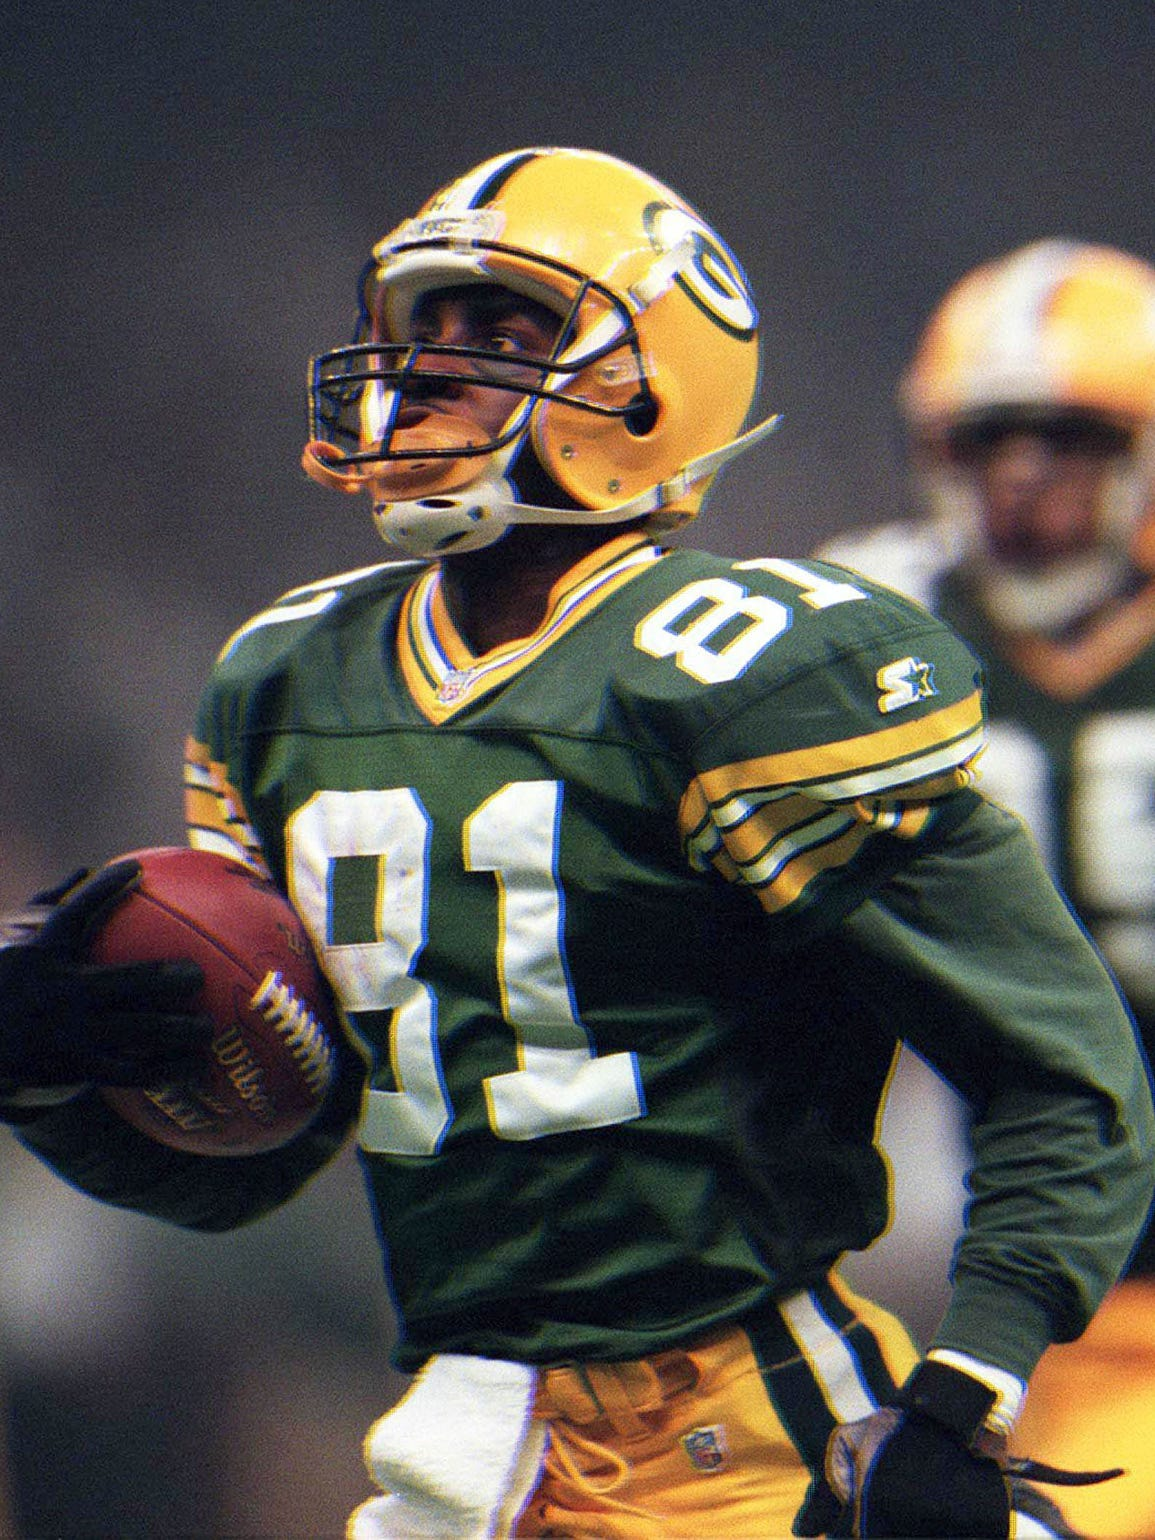 Desmond Howard was the MVP in Super Bowl XXXI as the Green Bay Packers defeated the New England Patriots, 35-21, in 1997. Howard is the cousin of Georgia State's Devin Mitchell. Mitchell's Georgia State Panthers are in the NCAA Tournament for the seventh time in school history.